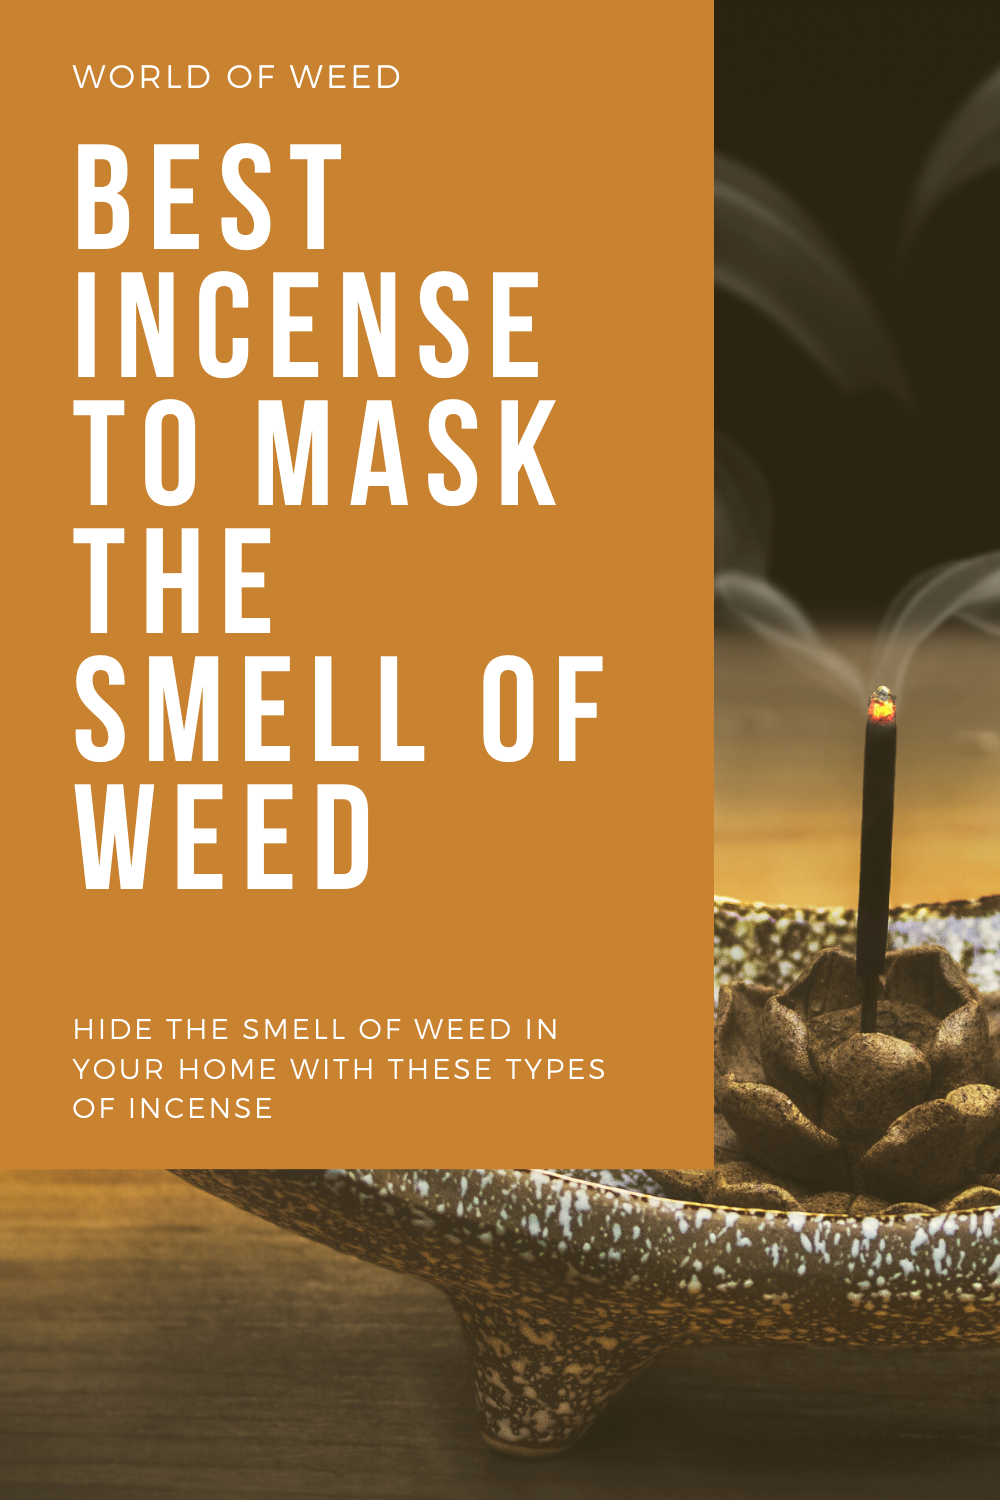 Best Incense for Masking the Smell of Weed